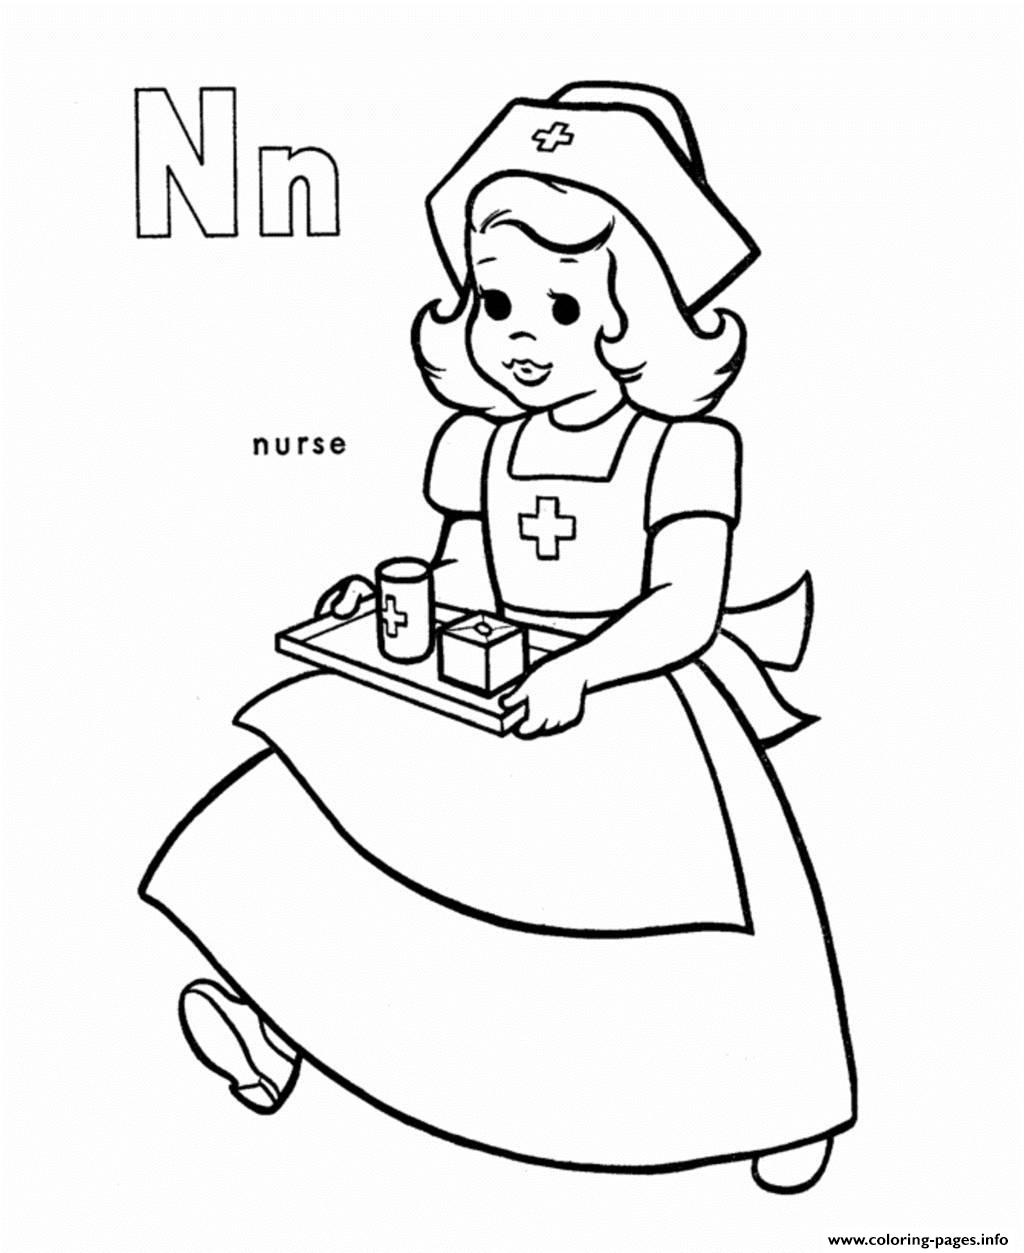 free alphabet s n is nurse26bd coloring pages printable